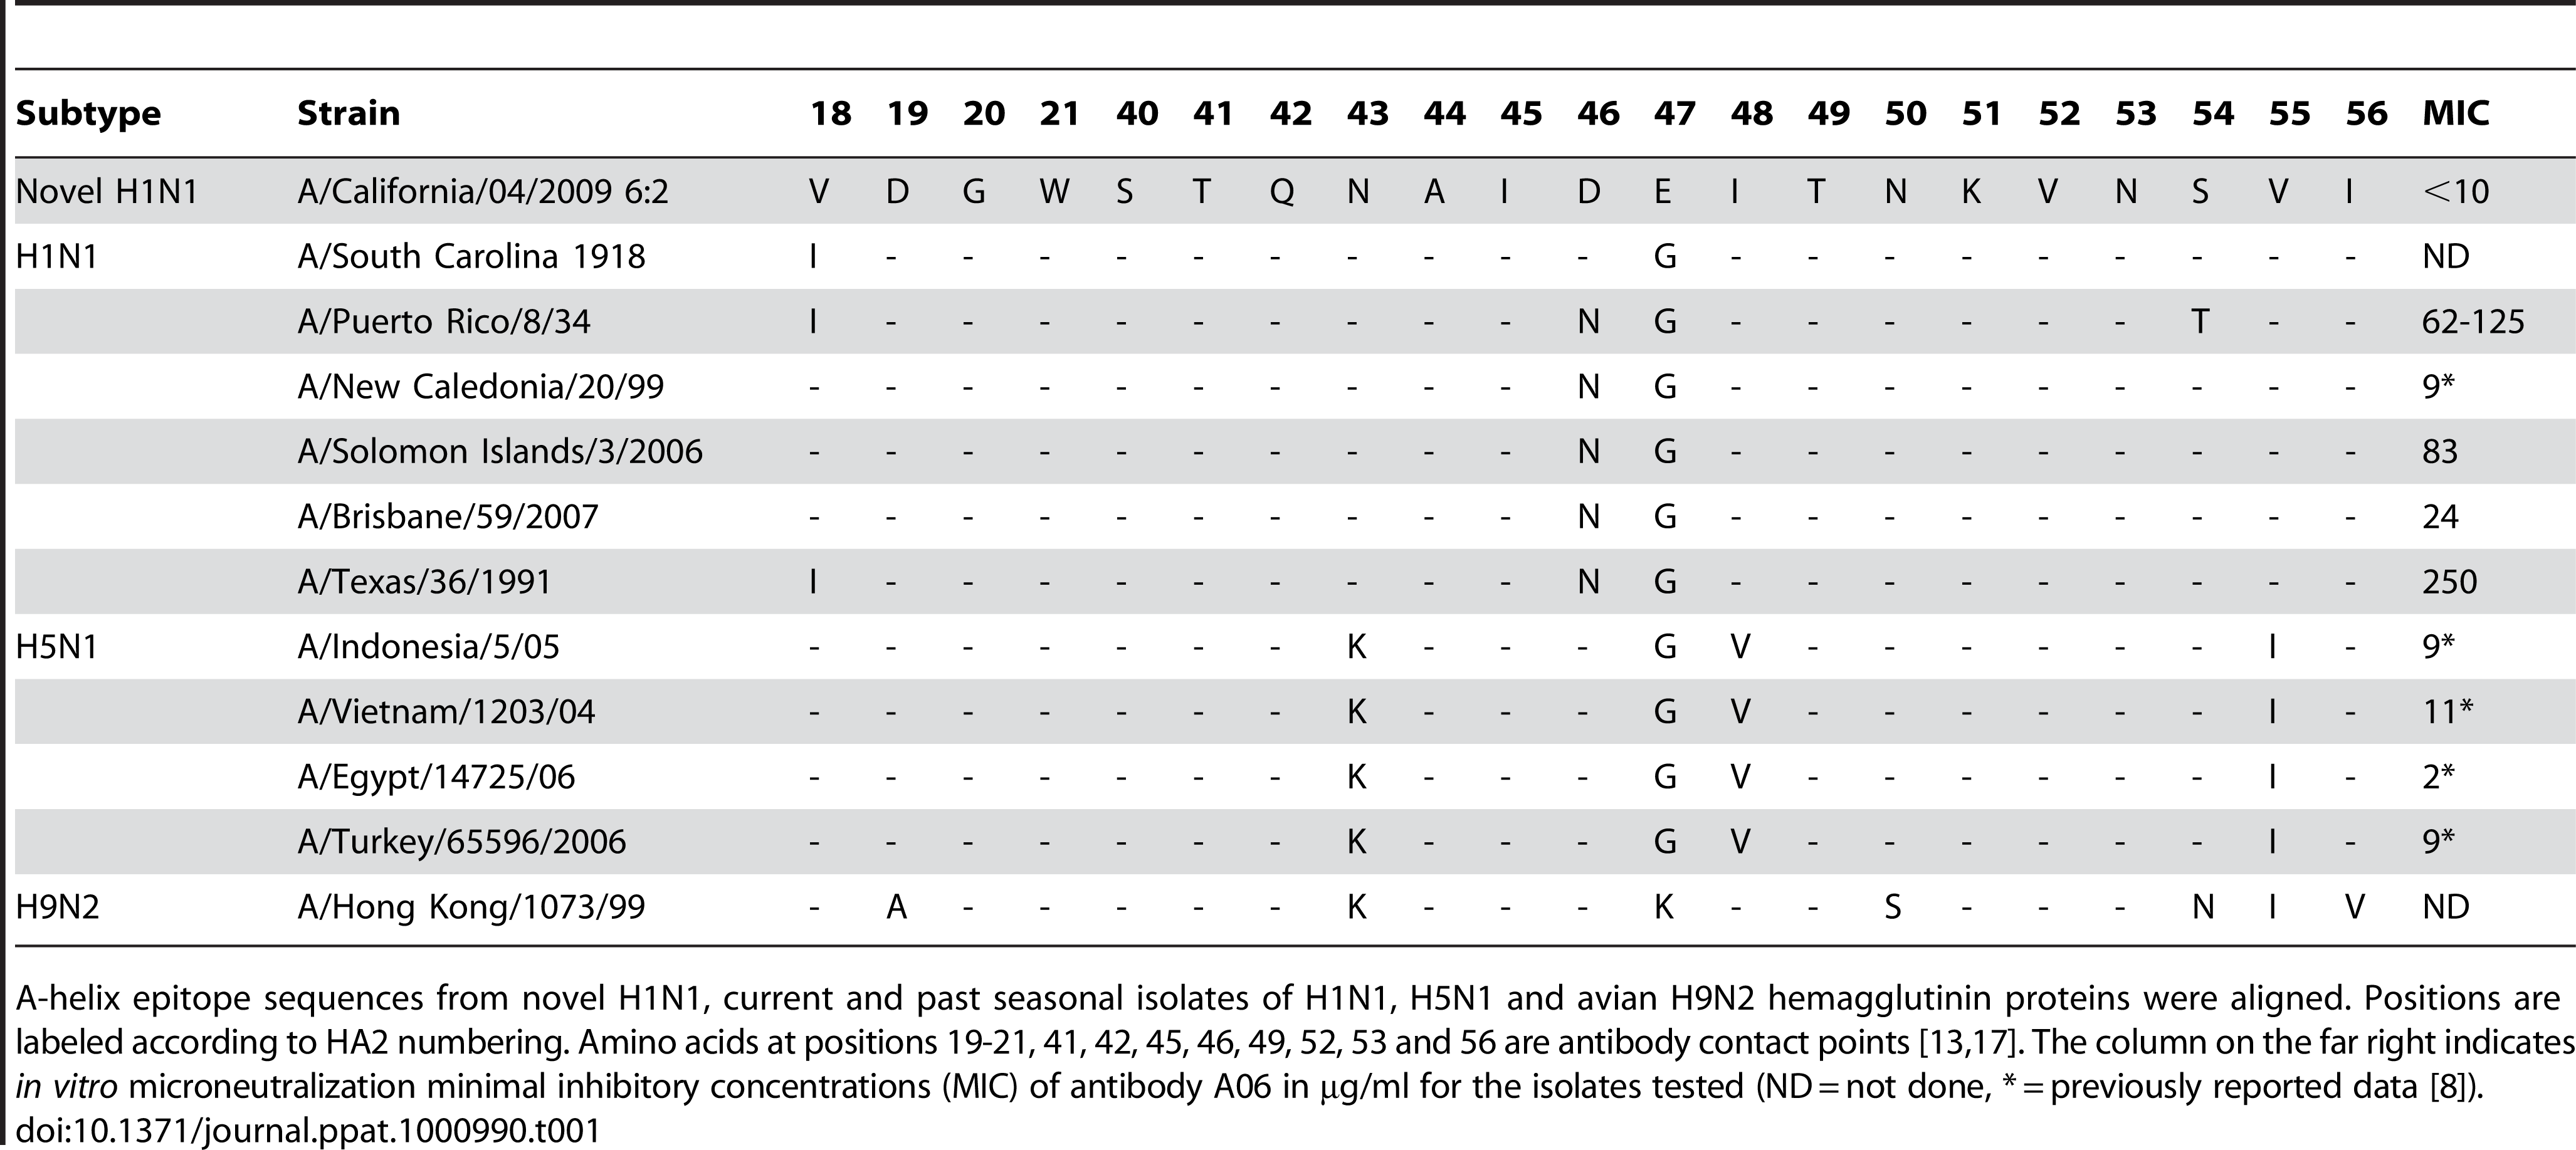 The A-helix epitope targeted by the A06 antibody is highly conserved across numerous types of influenza.